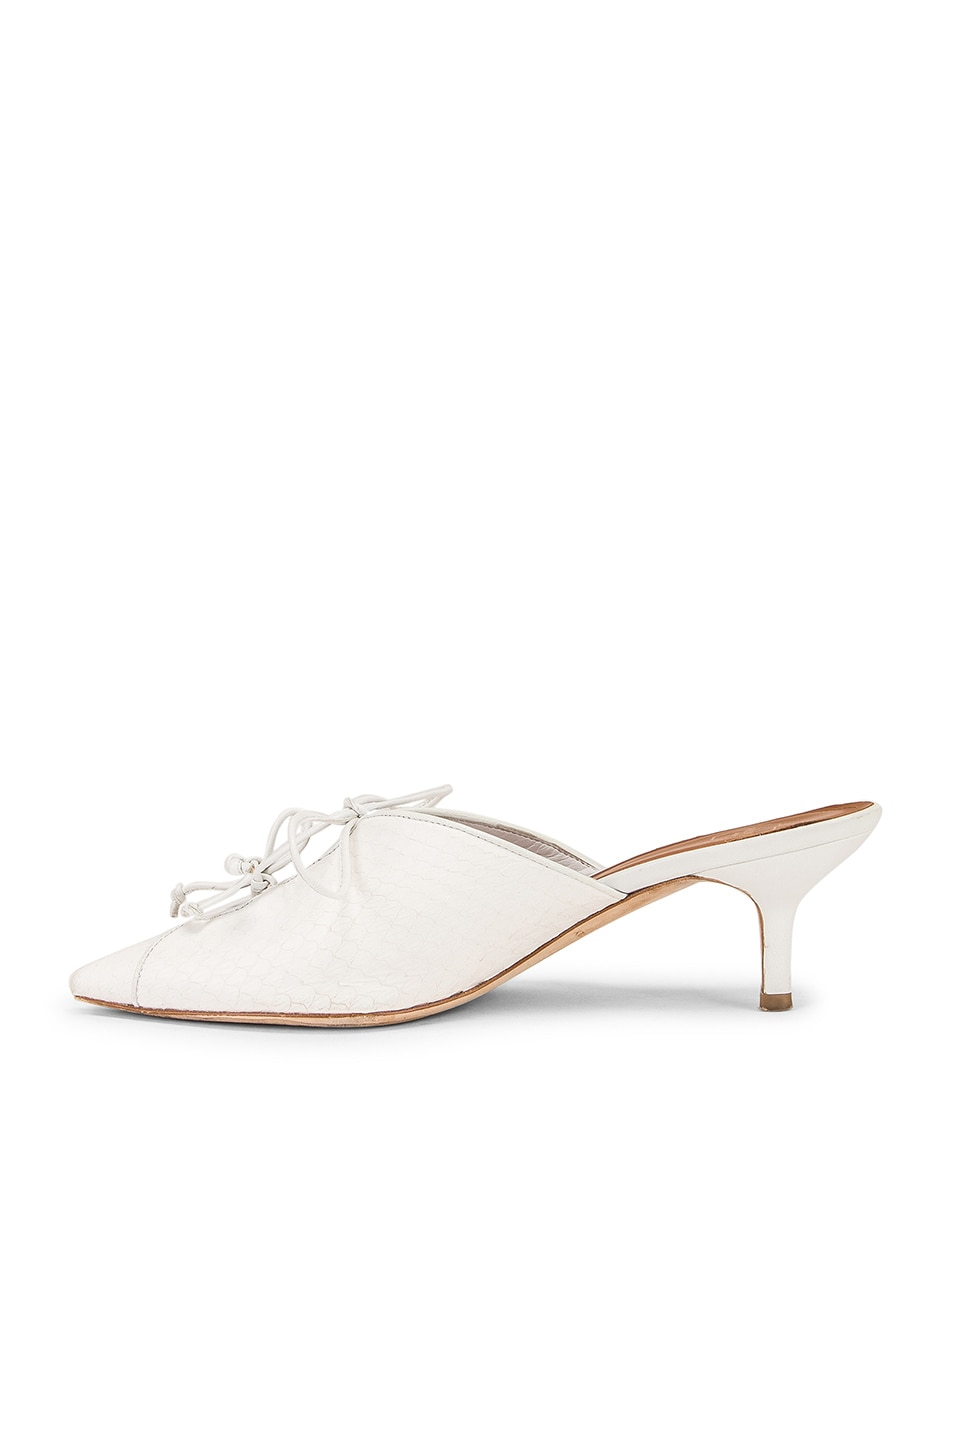 Image 5 of Malone Souliers Victoria MS 45 Heel in White